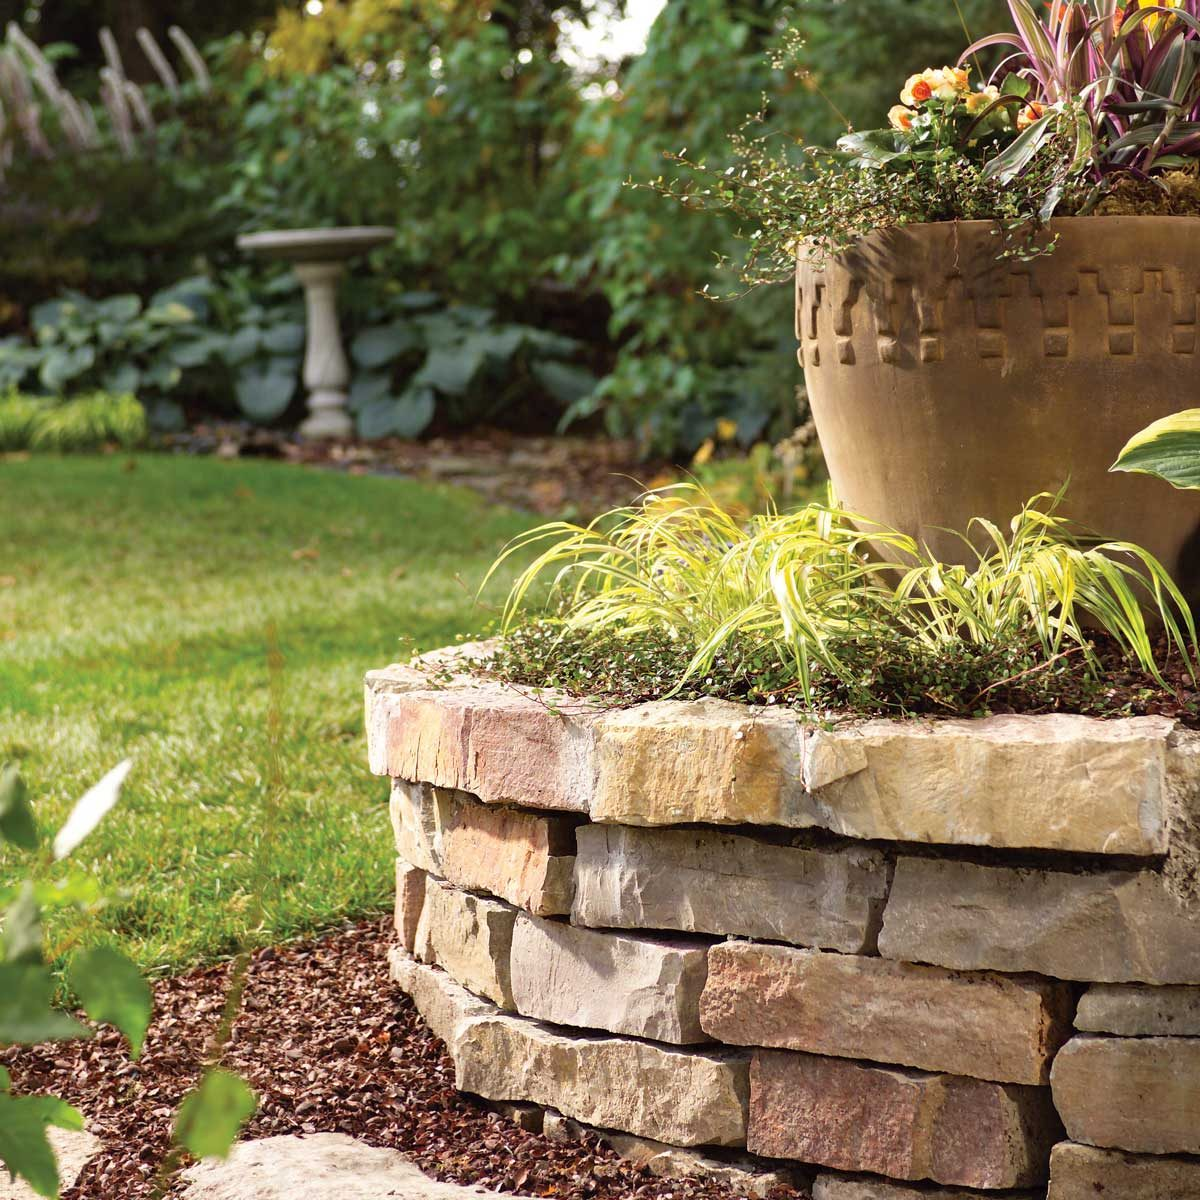 howto build garden bed with bricks